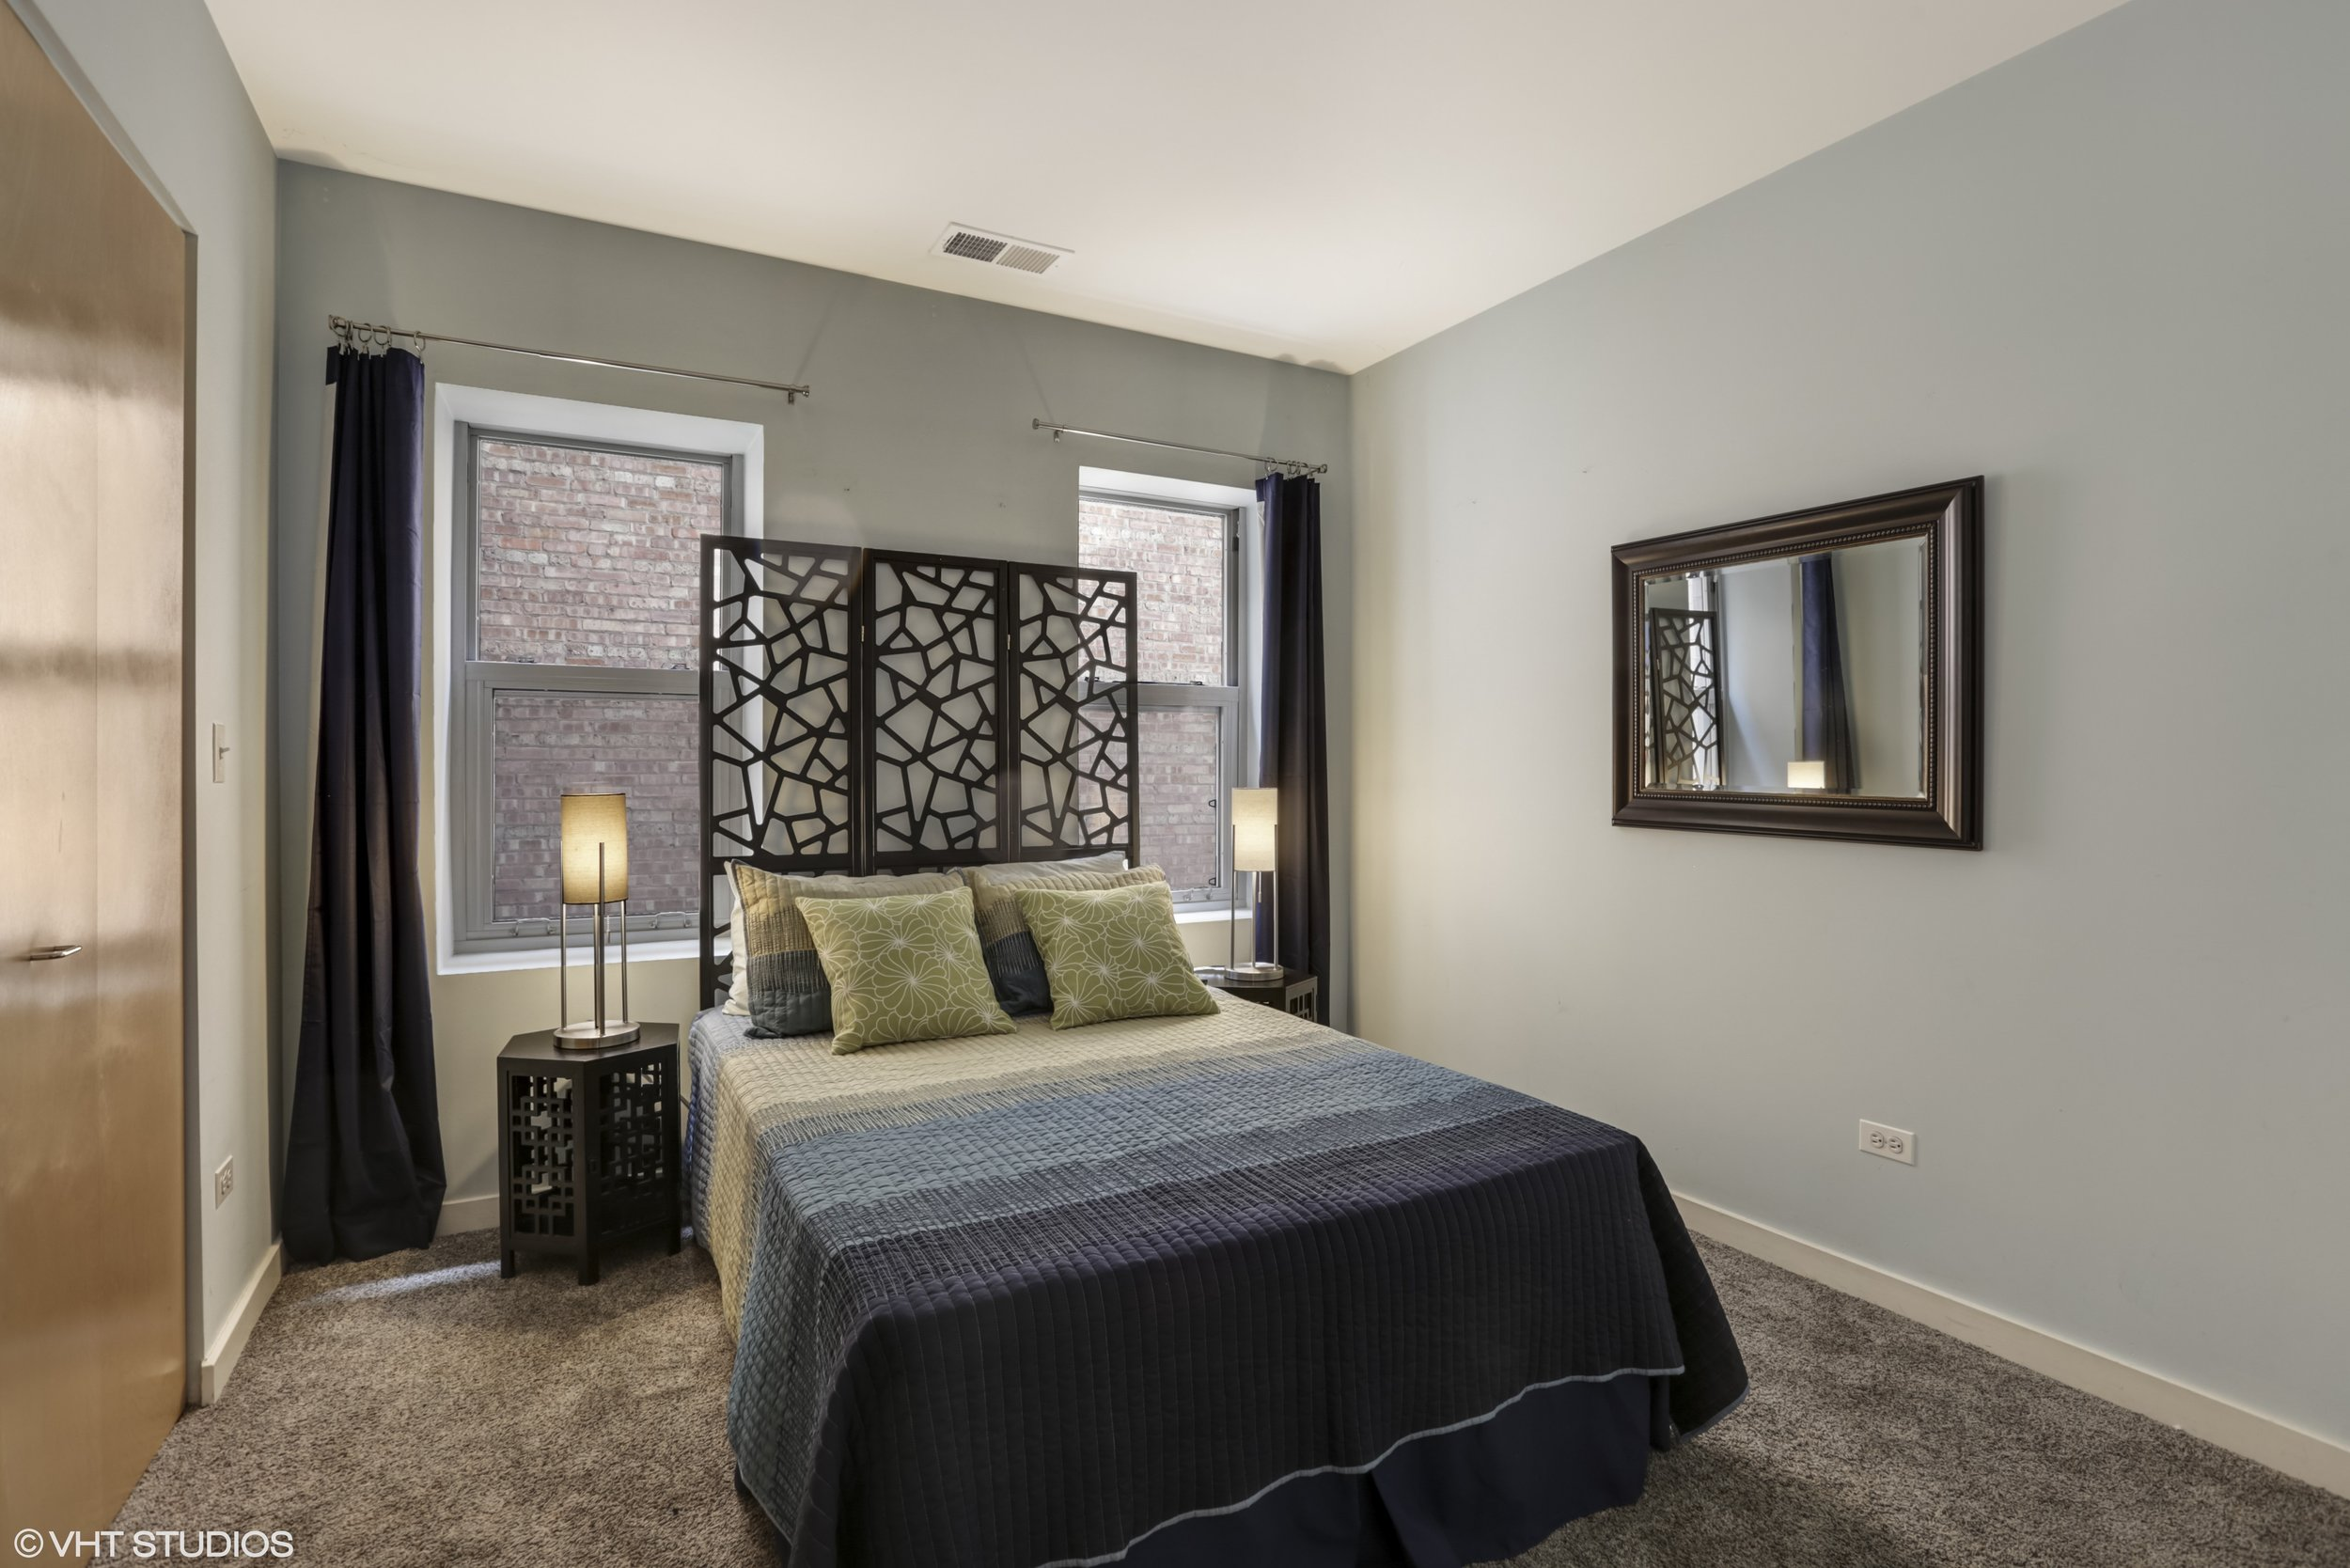 12_5430NorthSheridanRd_308_18_Bedroom_HiRes.jpg